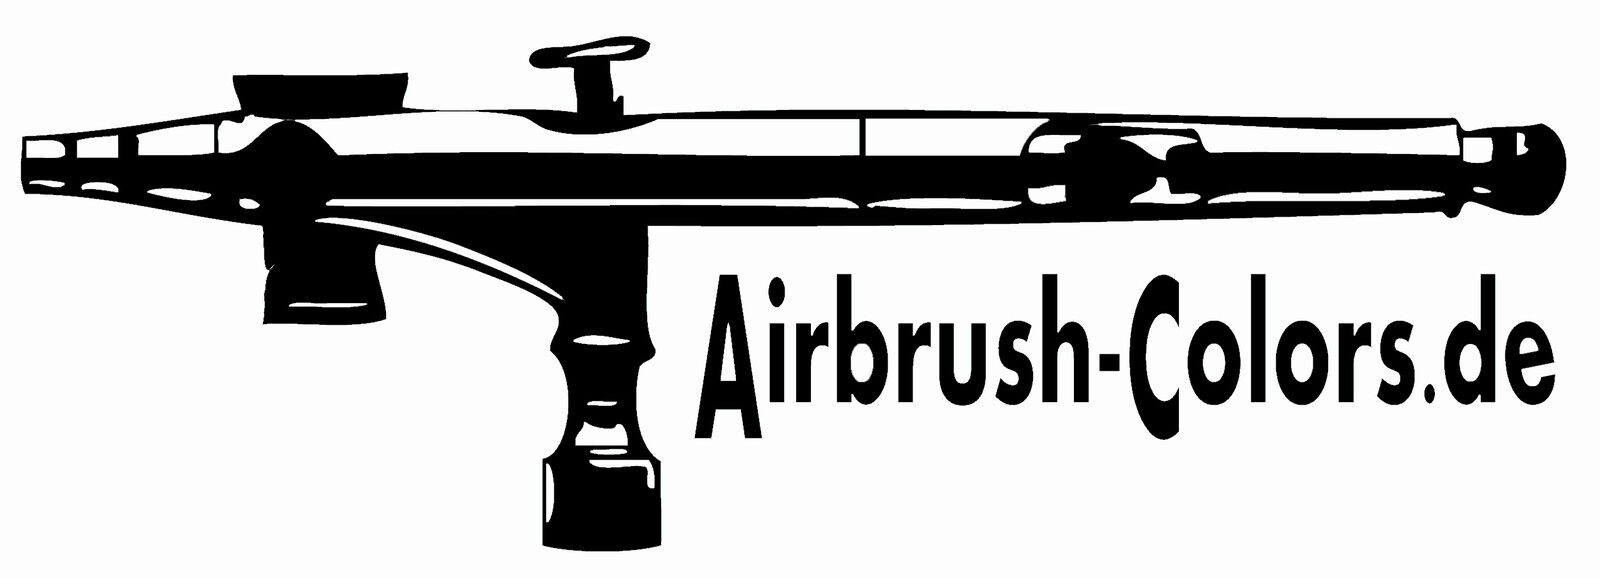 airbrush-colors